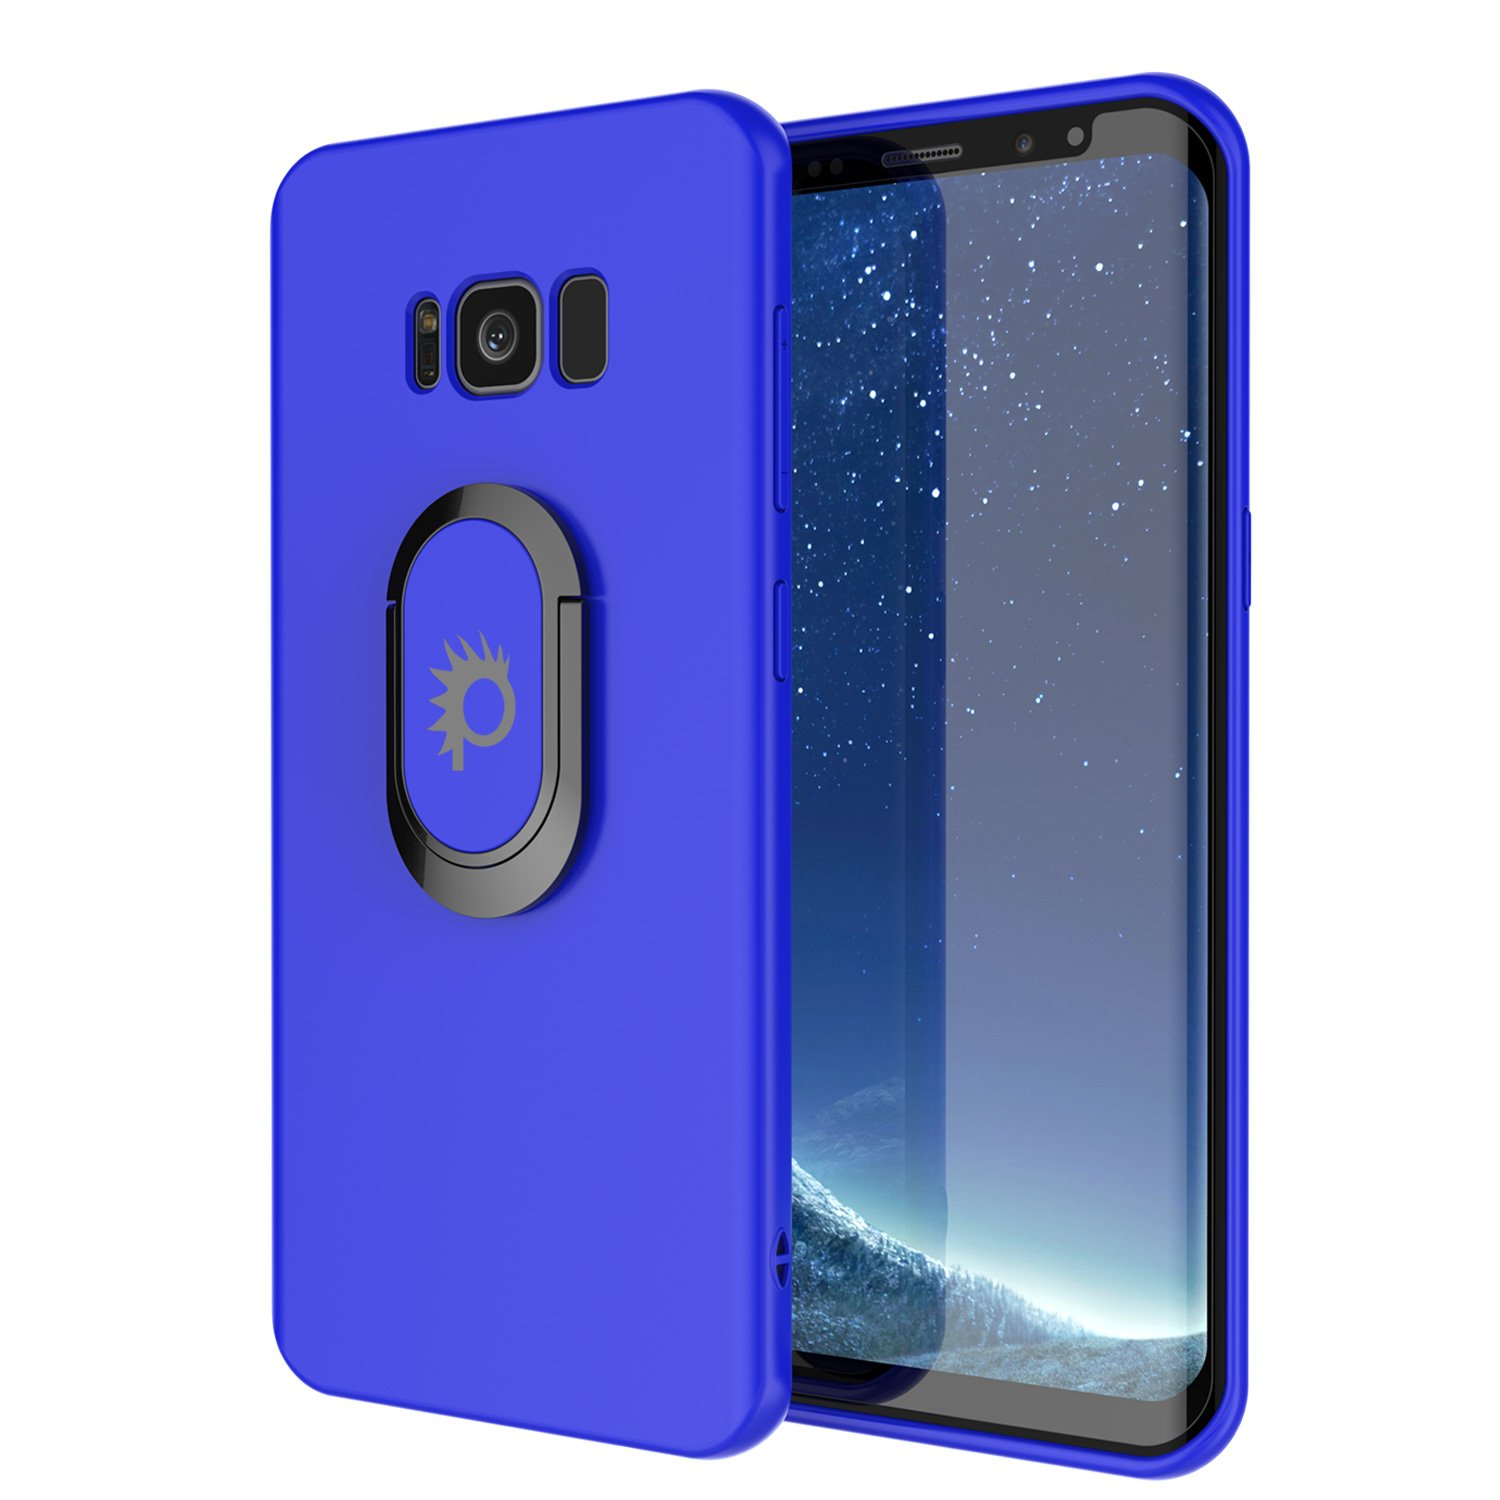 MULTI-USE SMARTPHONE COVER FOR GALAXY S8